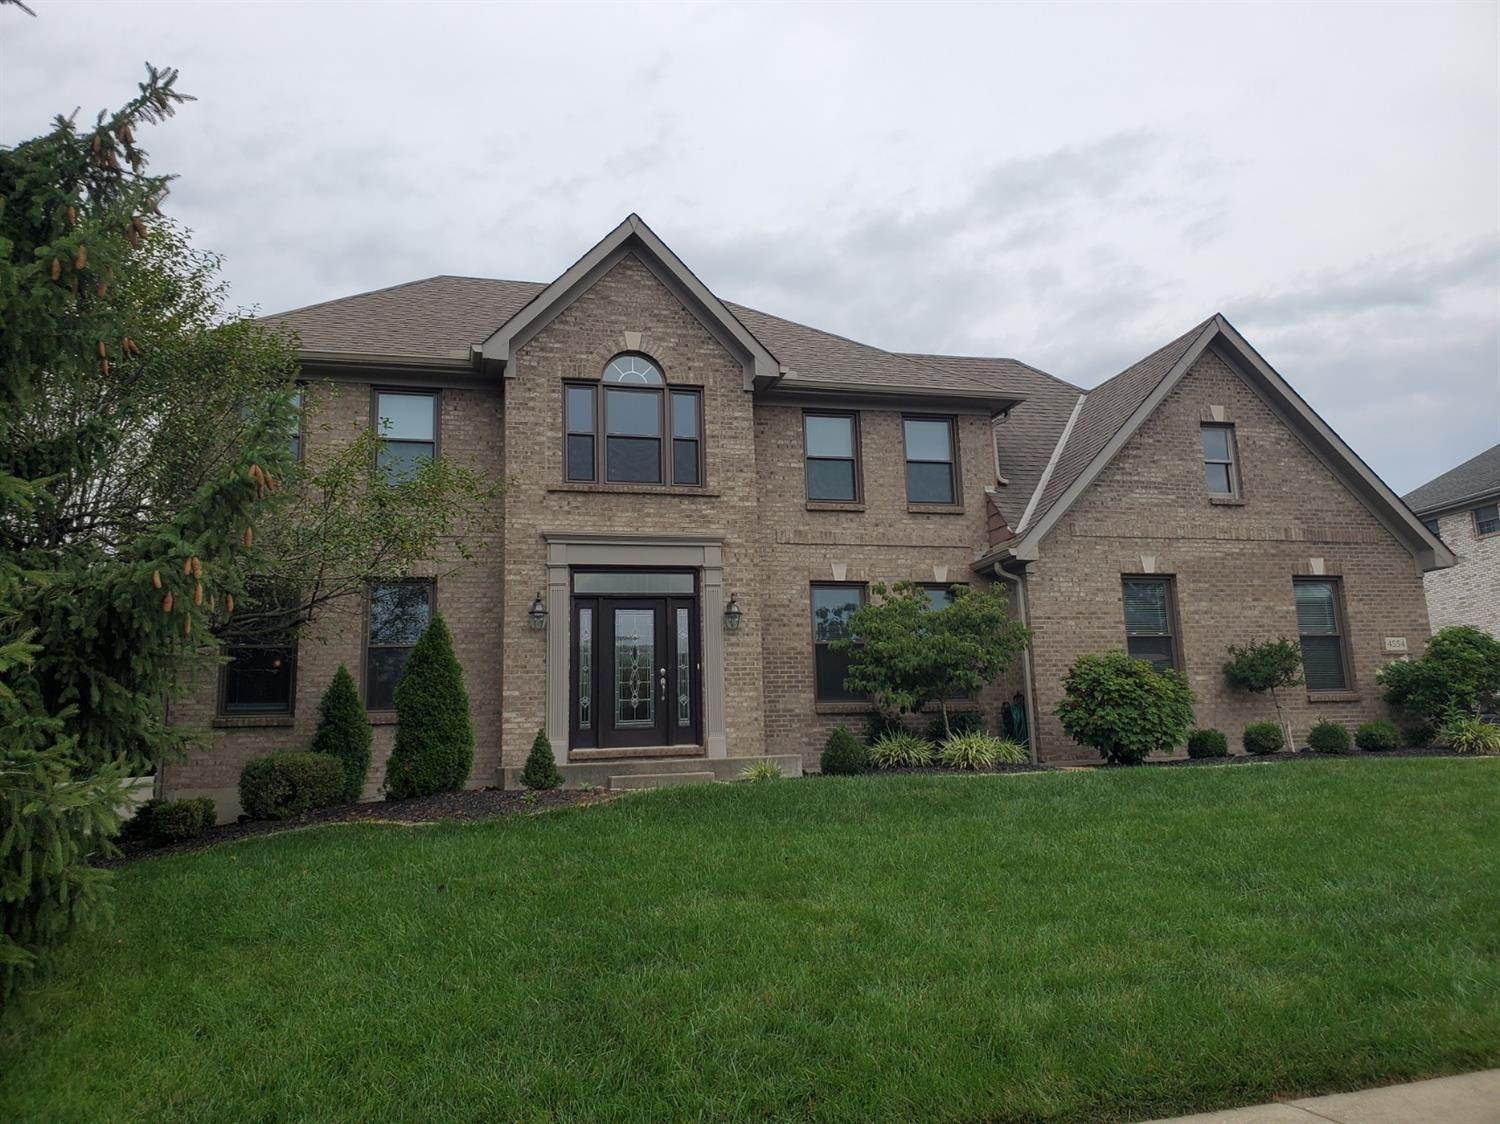 Single Family Homes for Sale at 4554 Philnoll Drive Colerain Township, Ohio 45247 United States